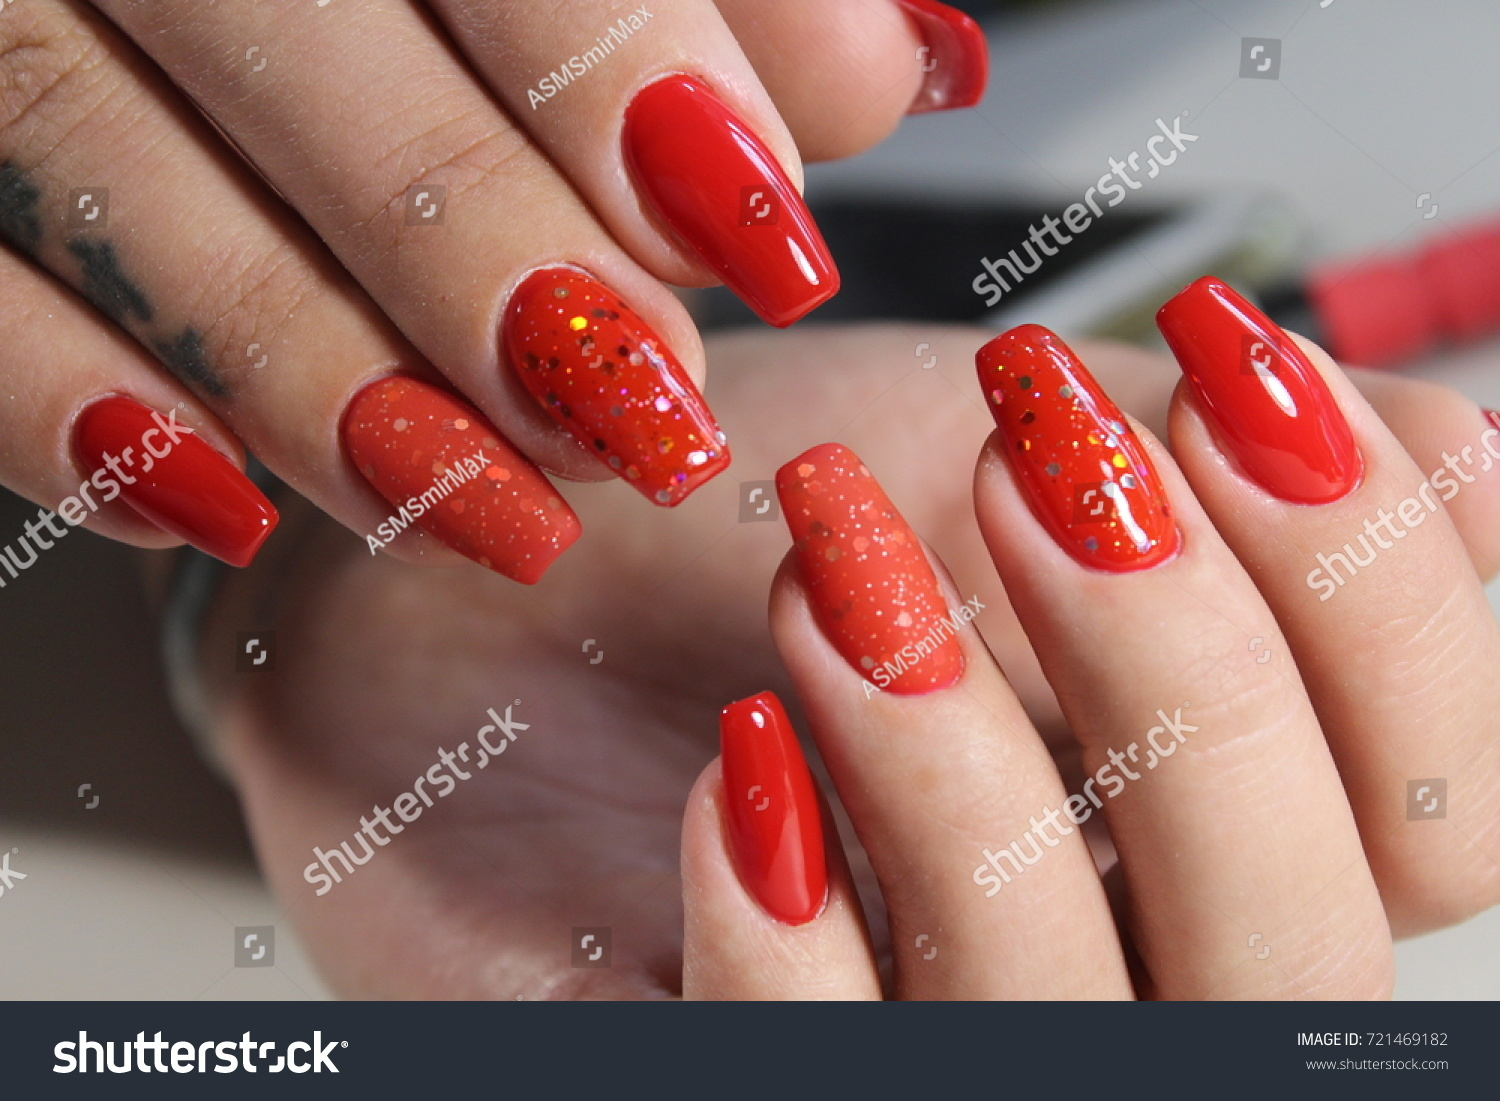 Long Beautiful Red Nails Effective Manicure Stock Photo (100% Legal ...